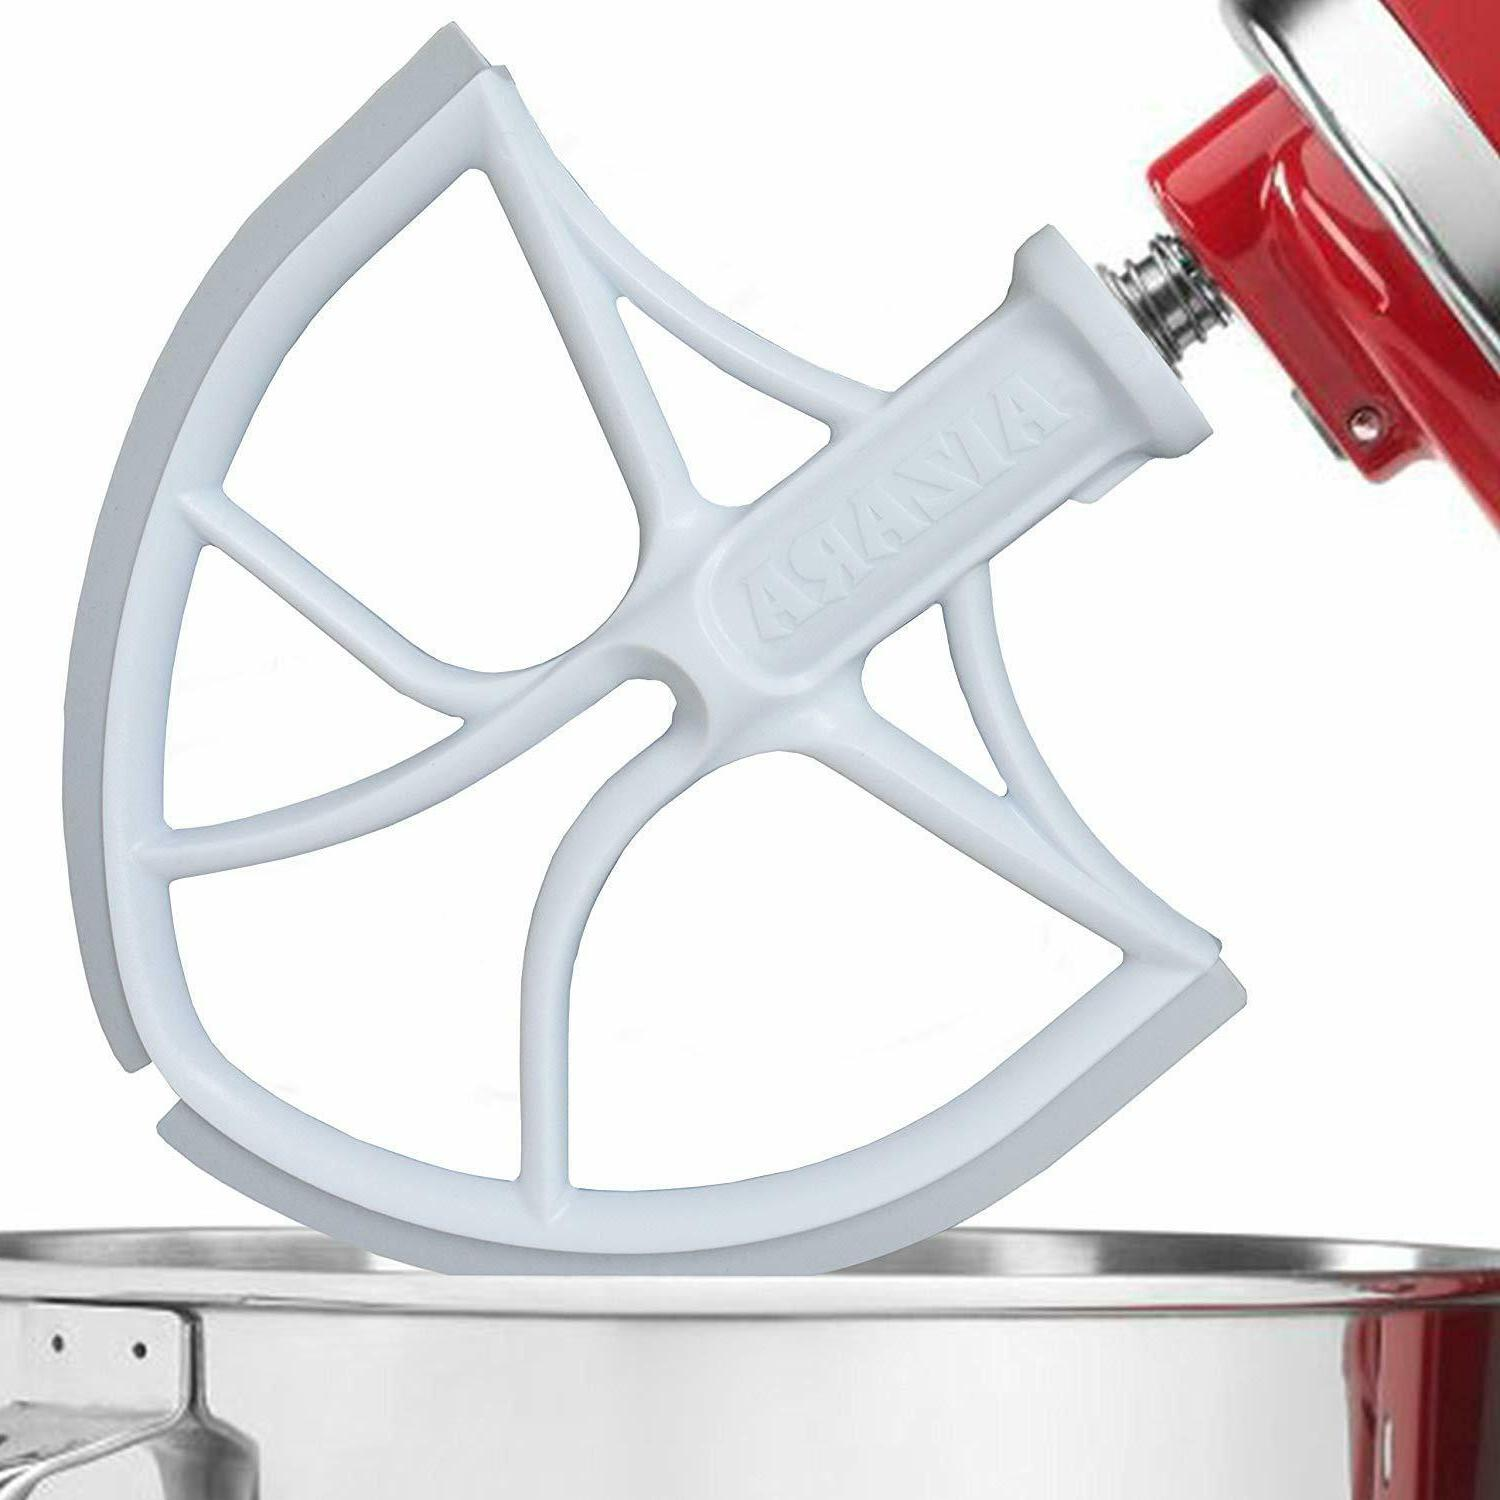 Attachments / Accessory Flat Beater Blade for Aid 6-Qt Mixer